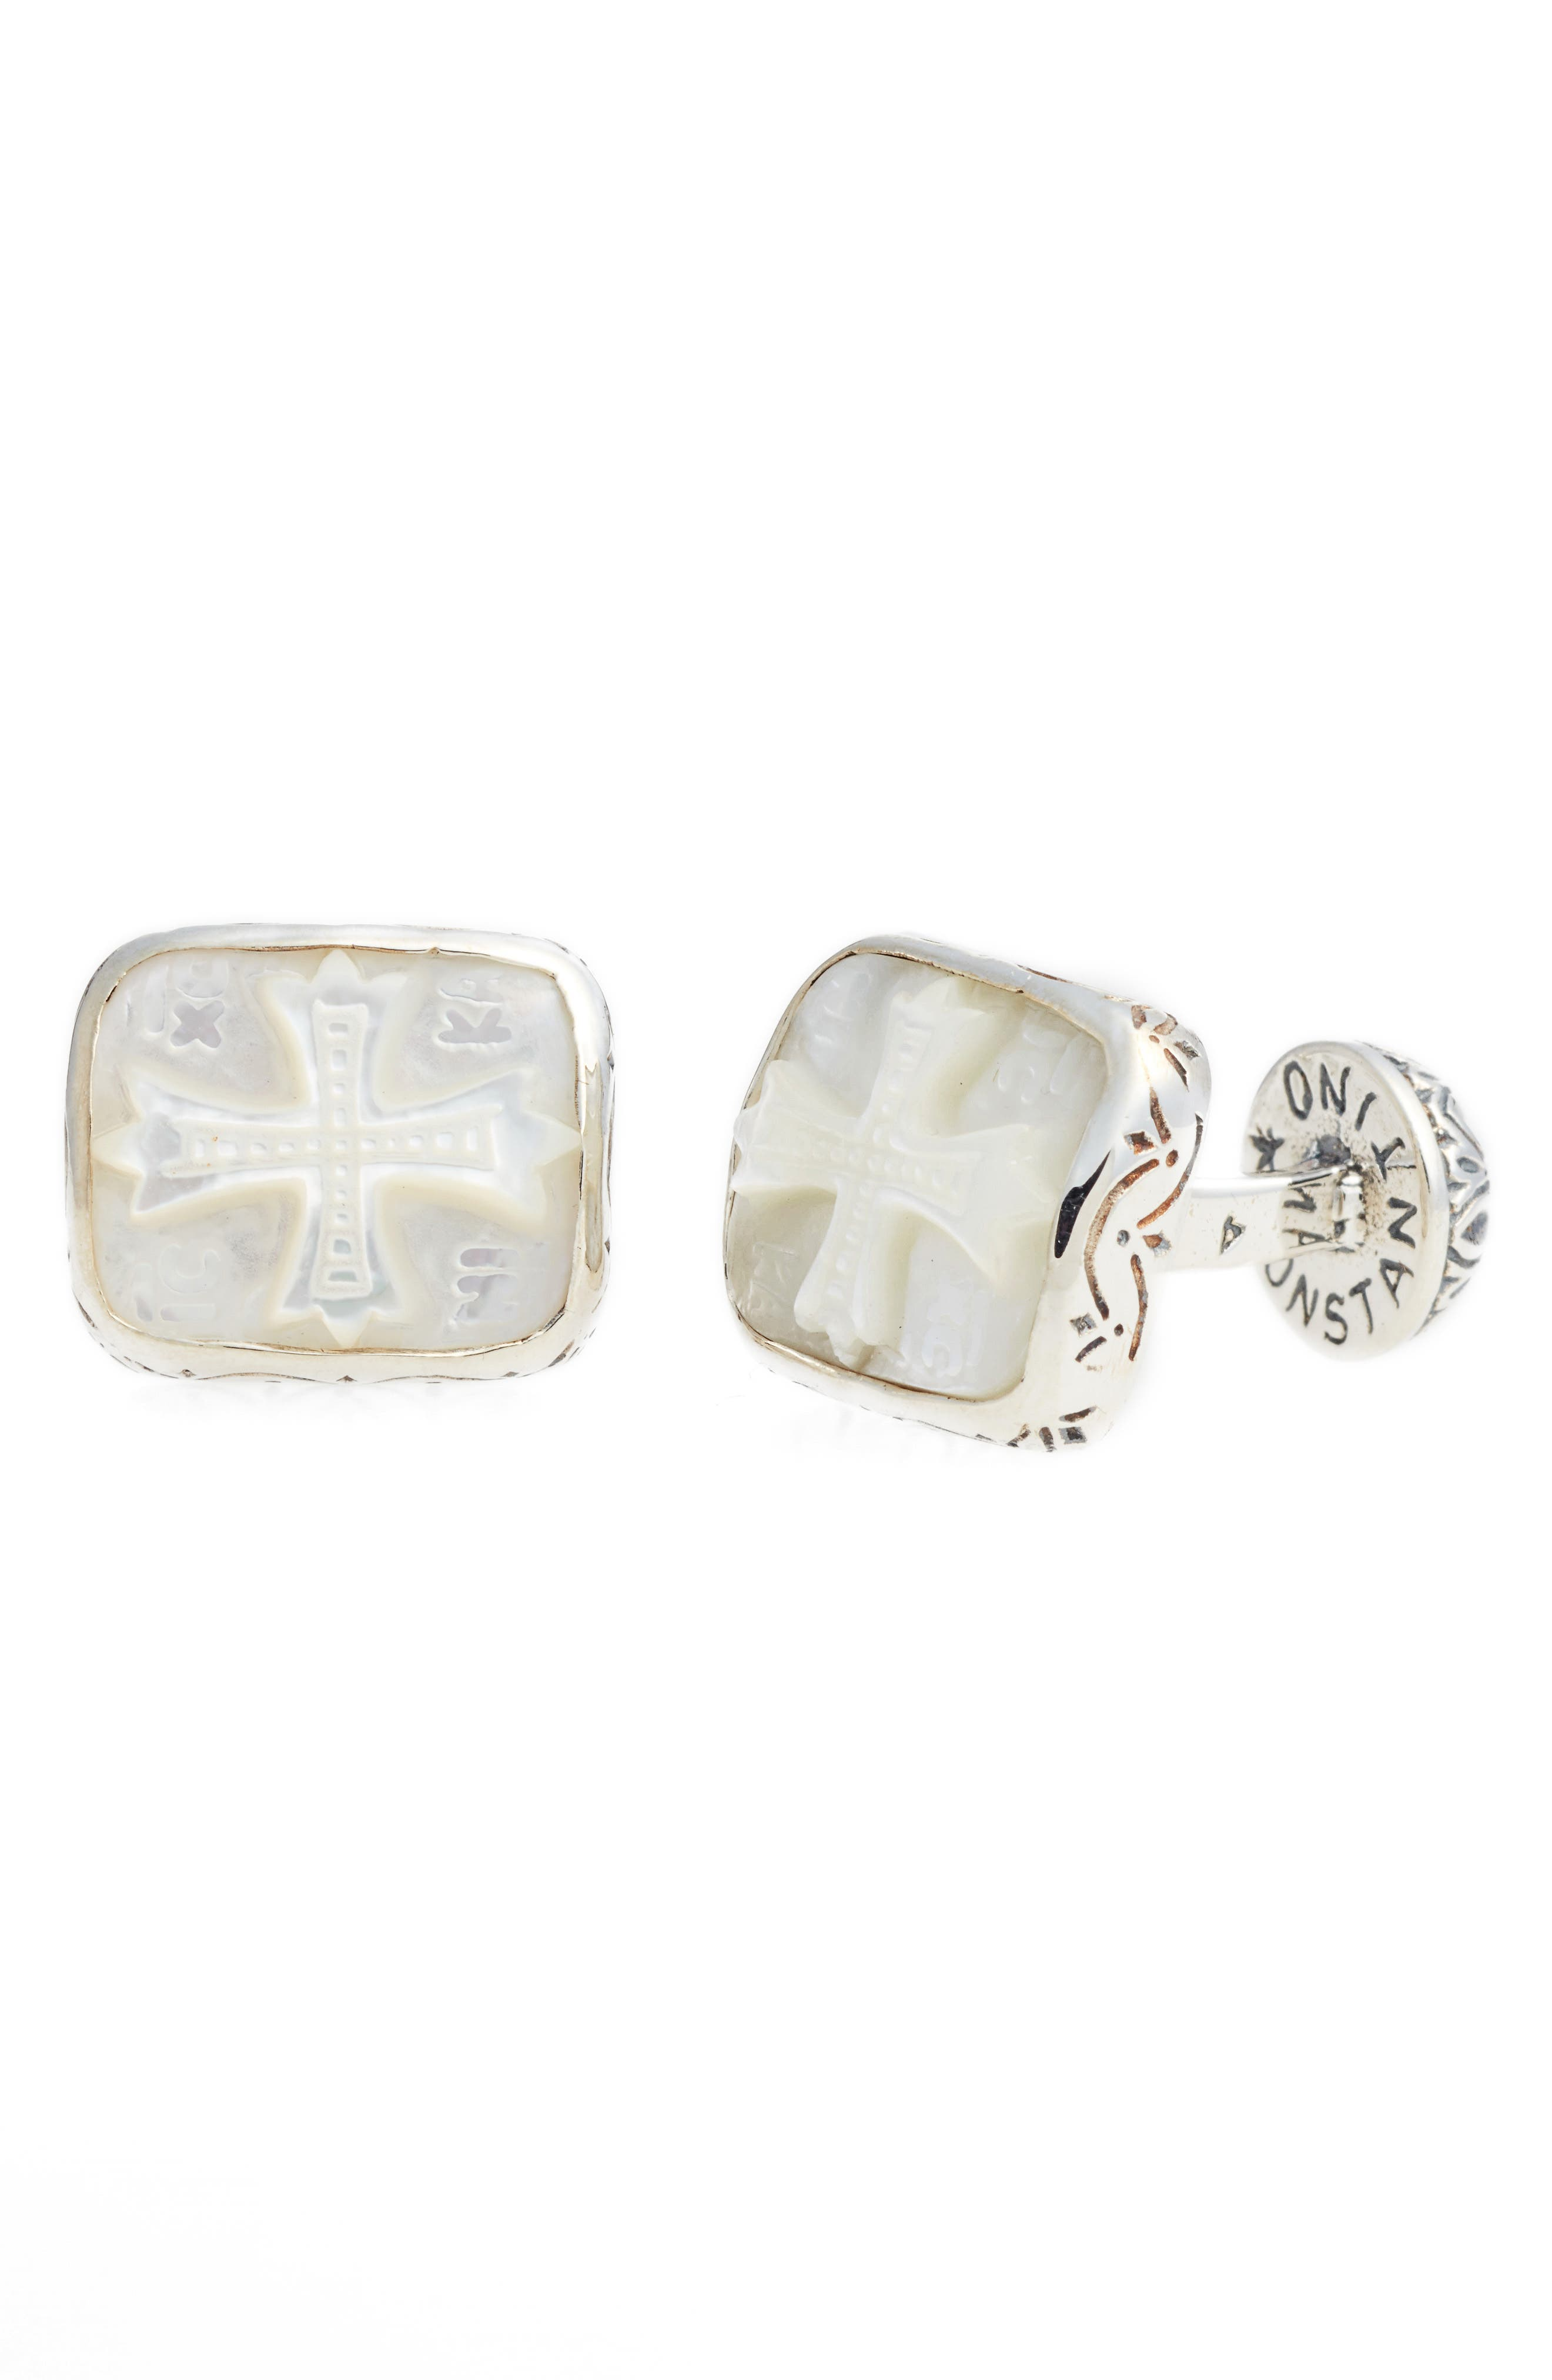 Color Classics Cuff Links,                             Main thumbnail 1, color,                             Silver/ Mother Of Pearl